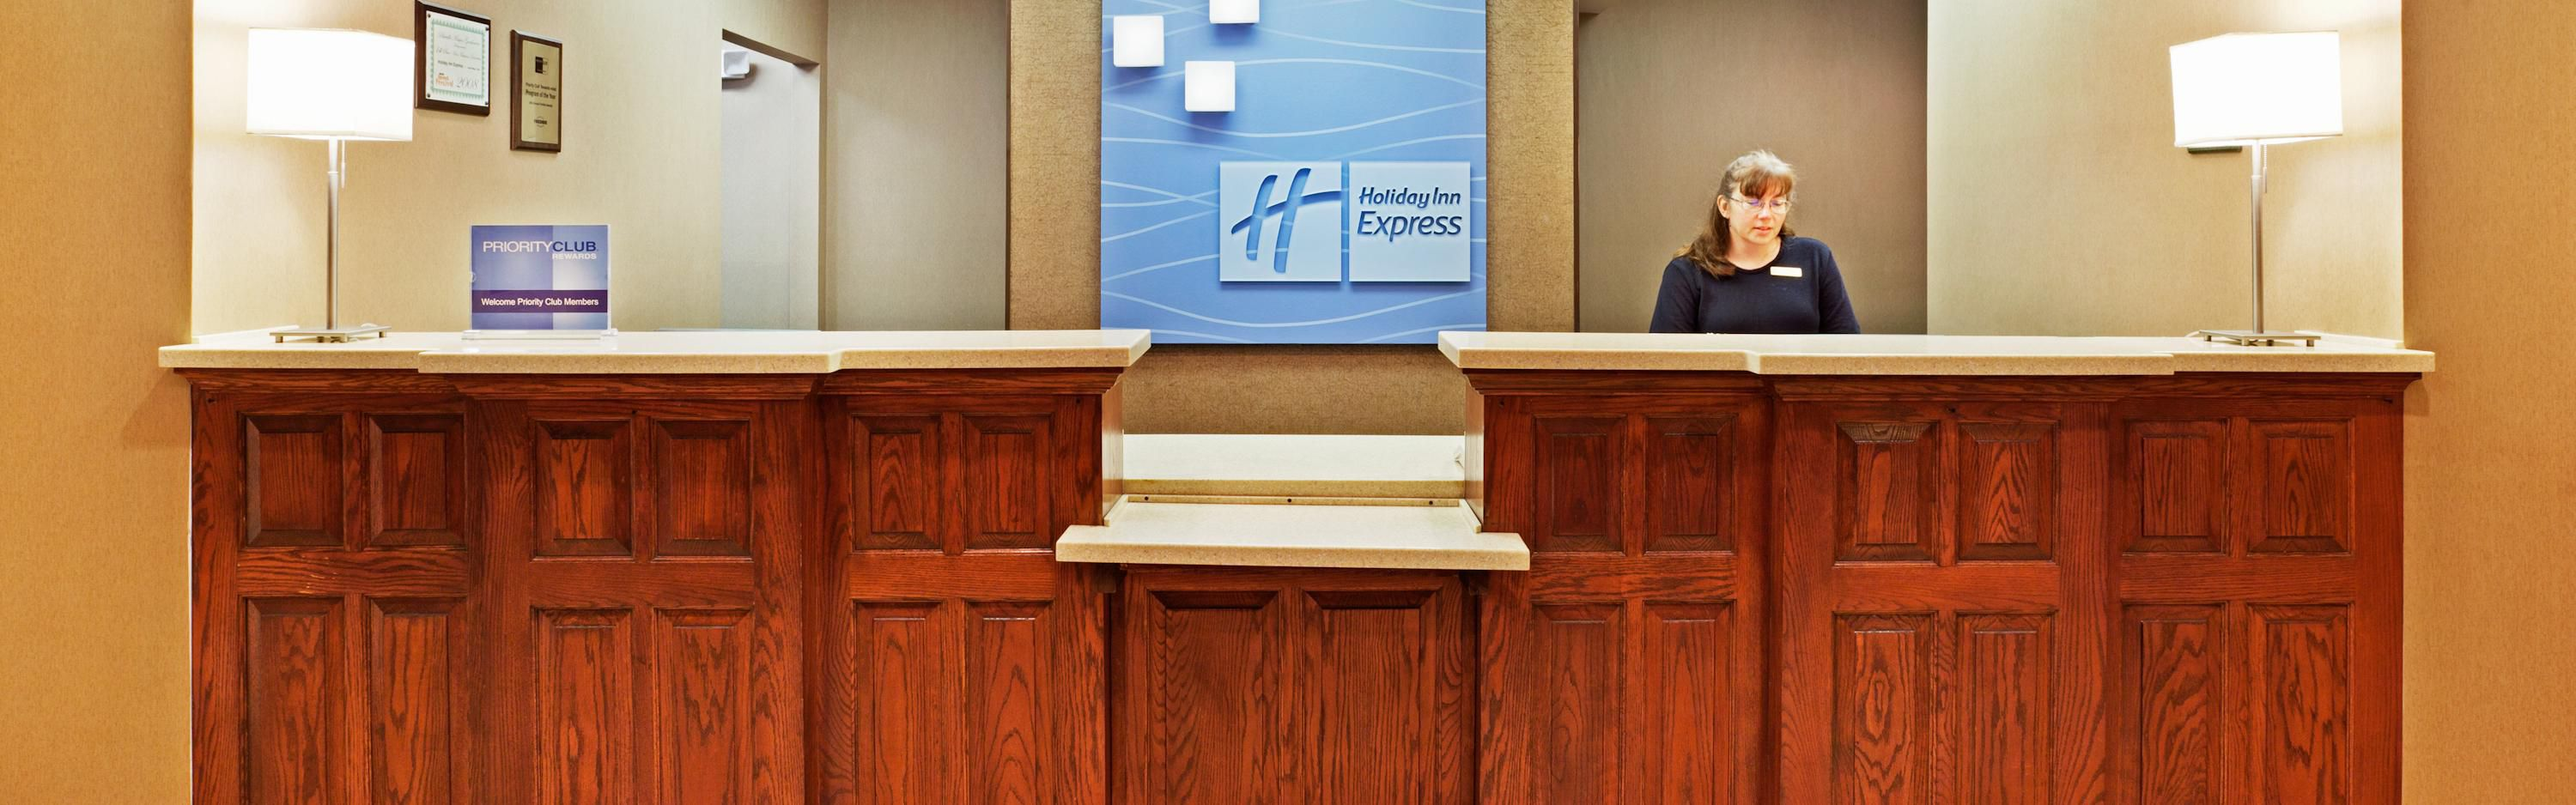 Welcome To The Holiday Inn Express Hotel Pikeville KY!